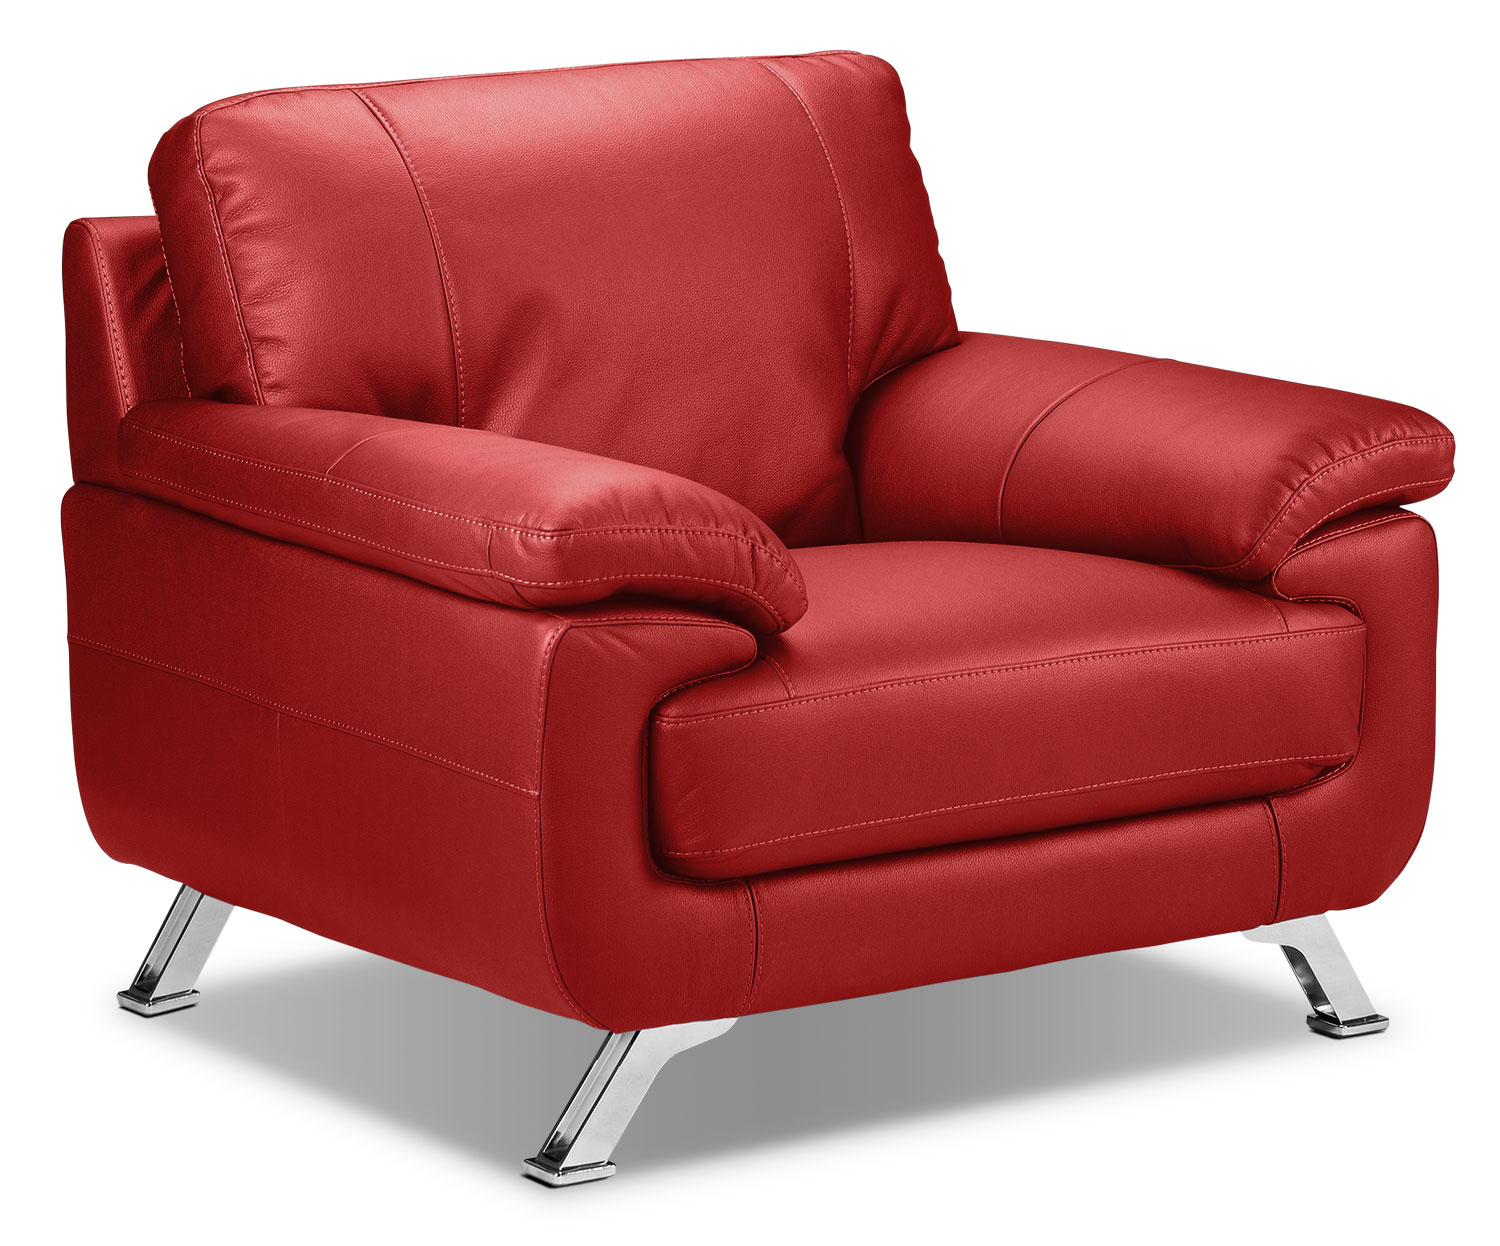 Living Room Furniture - Infinity Chair - Red